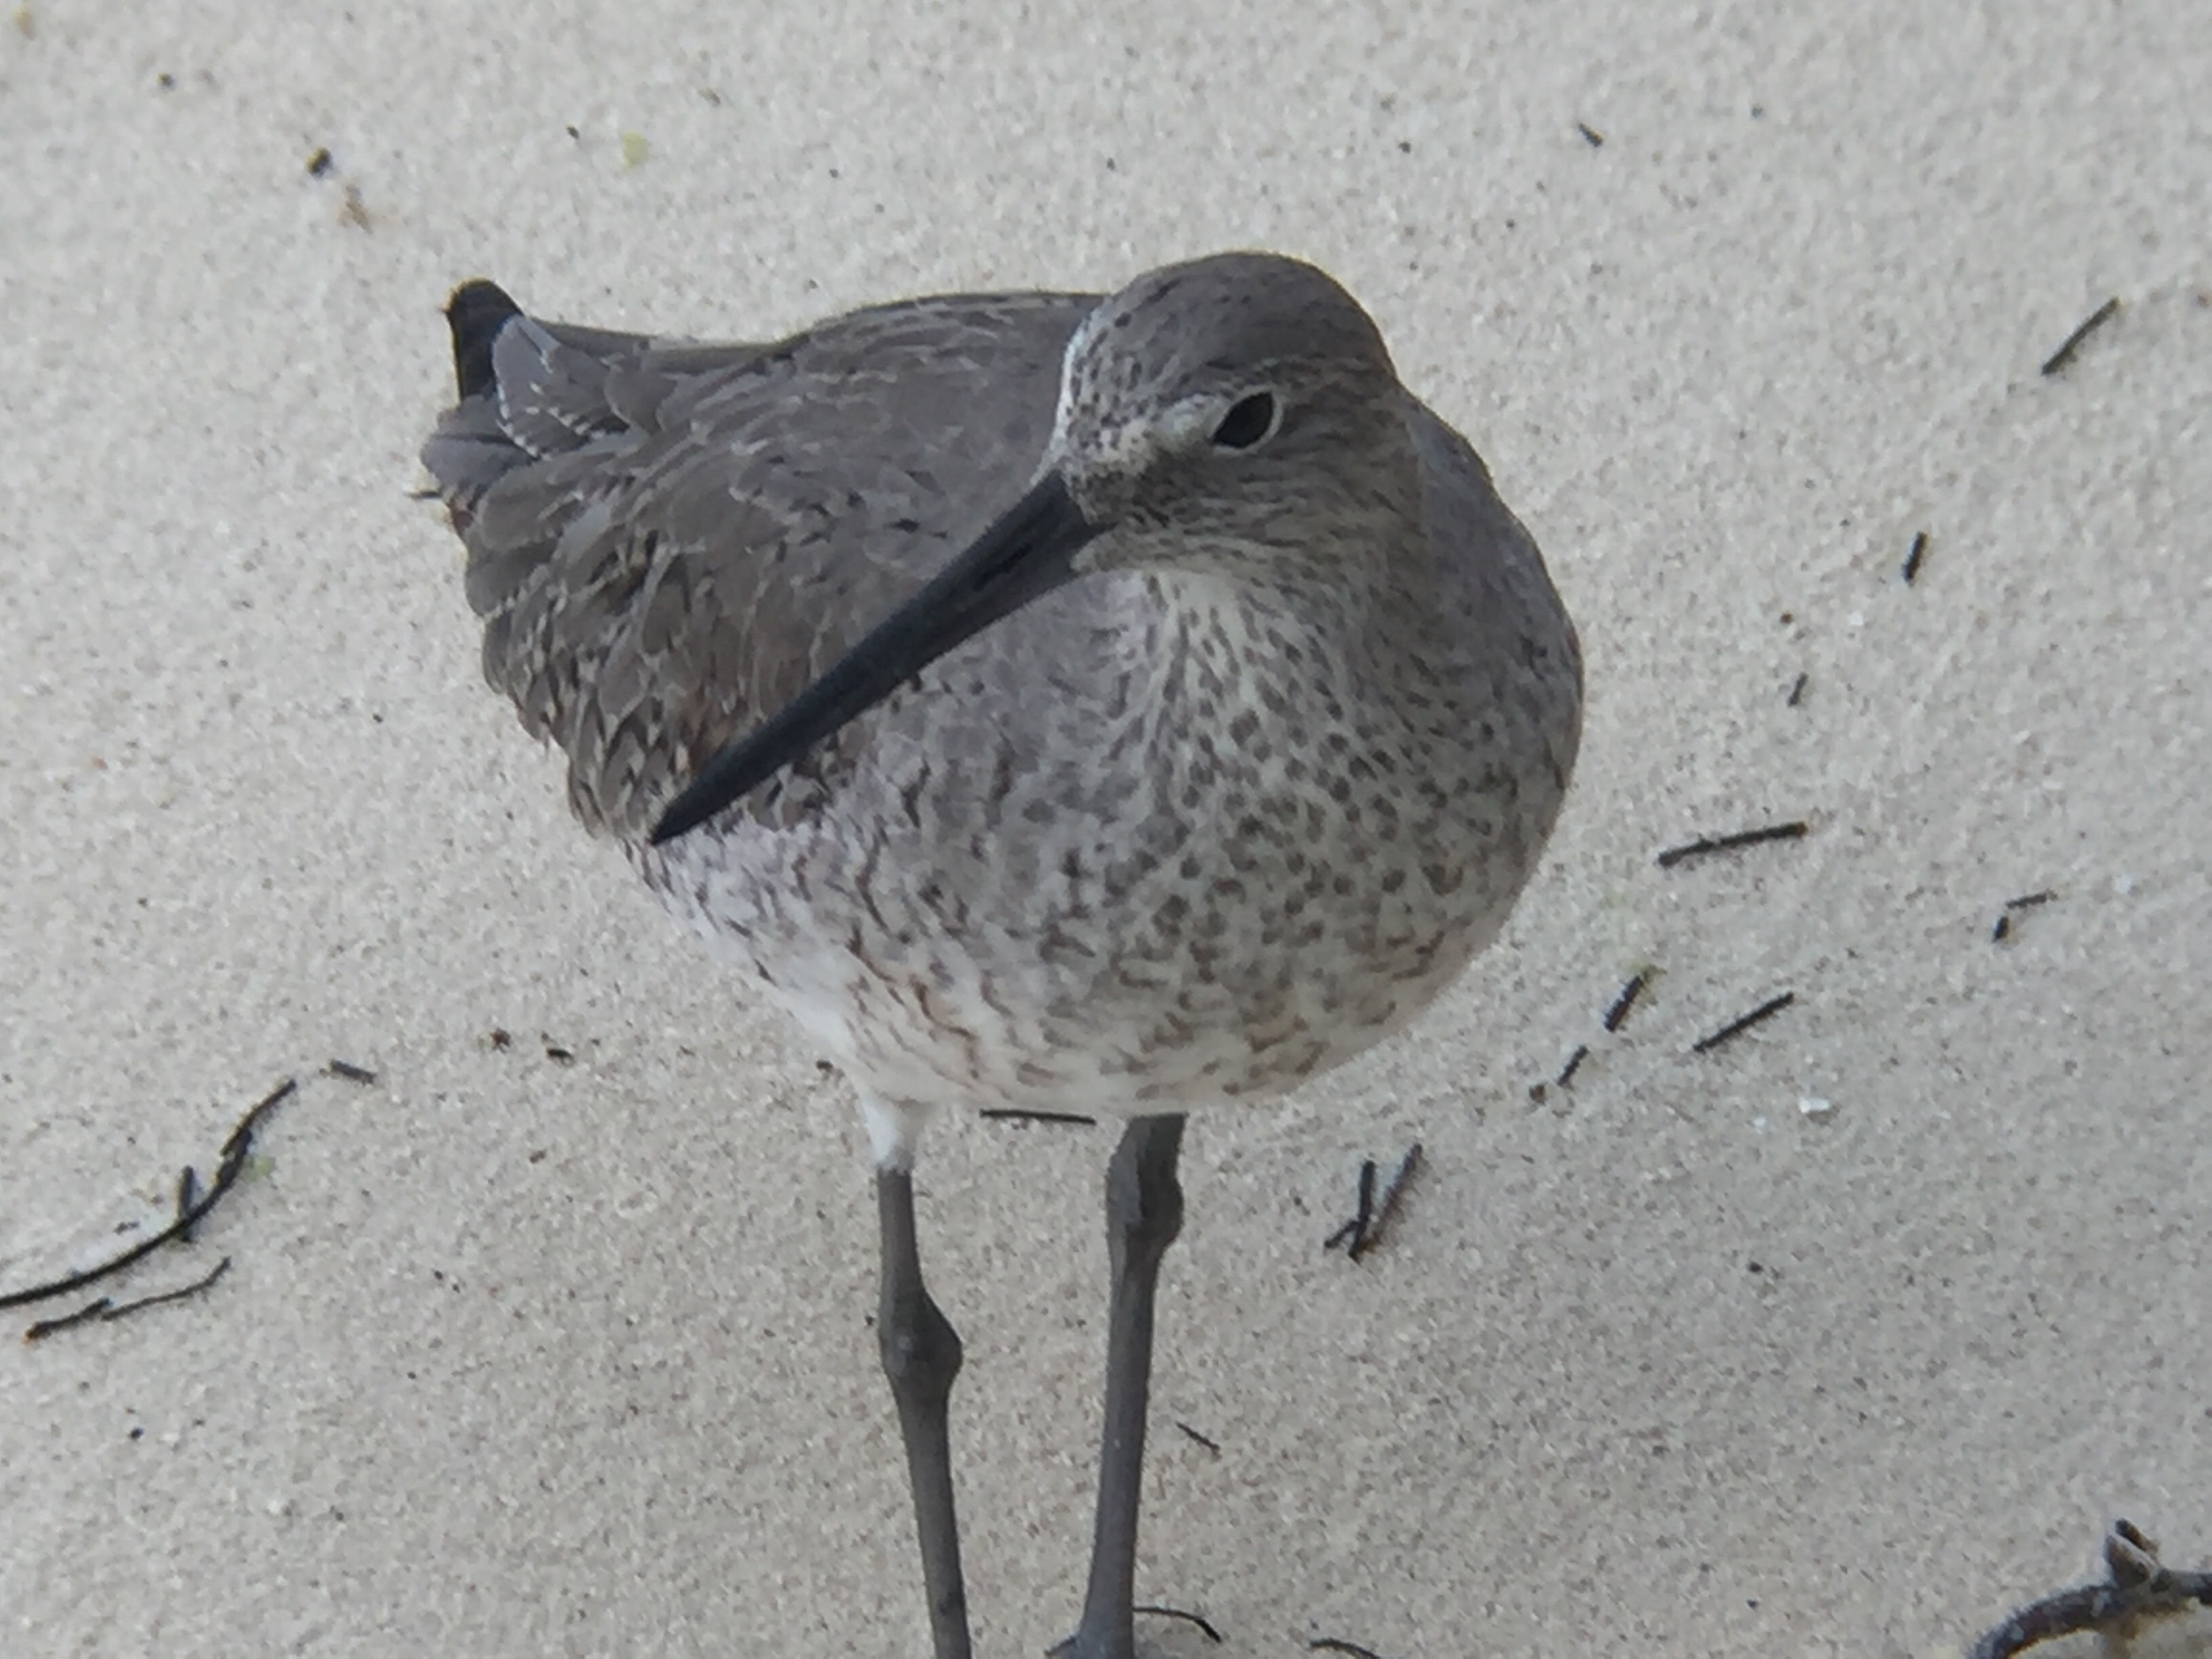 A Willet feeds on the beach